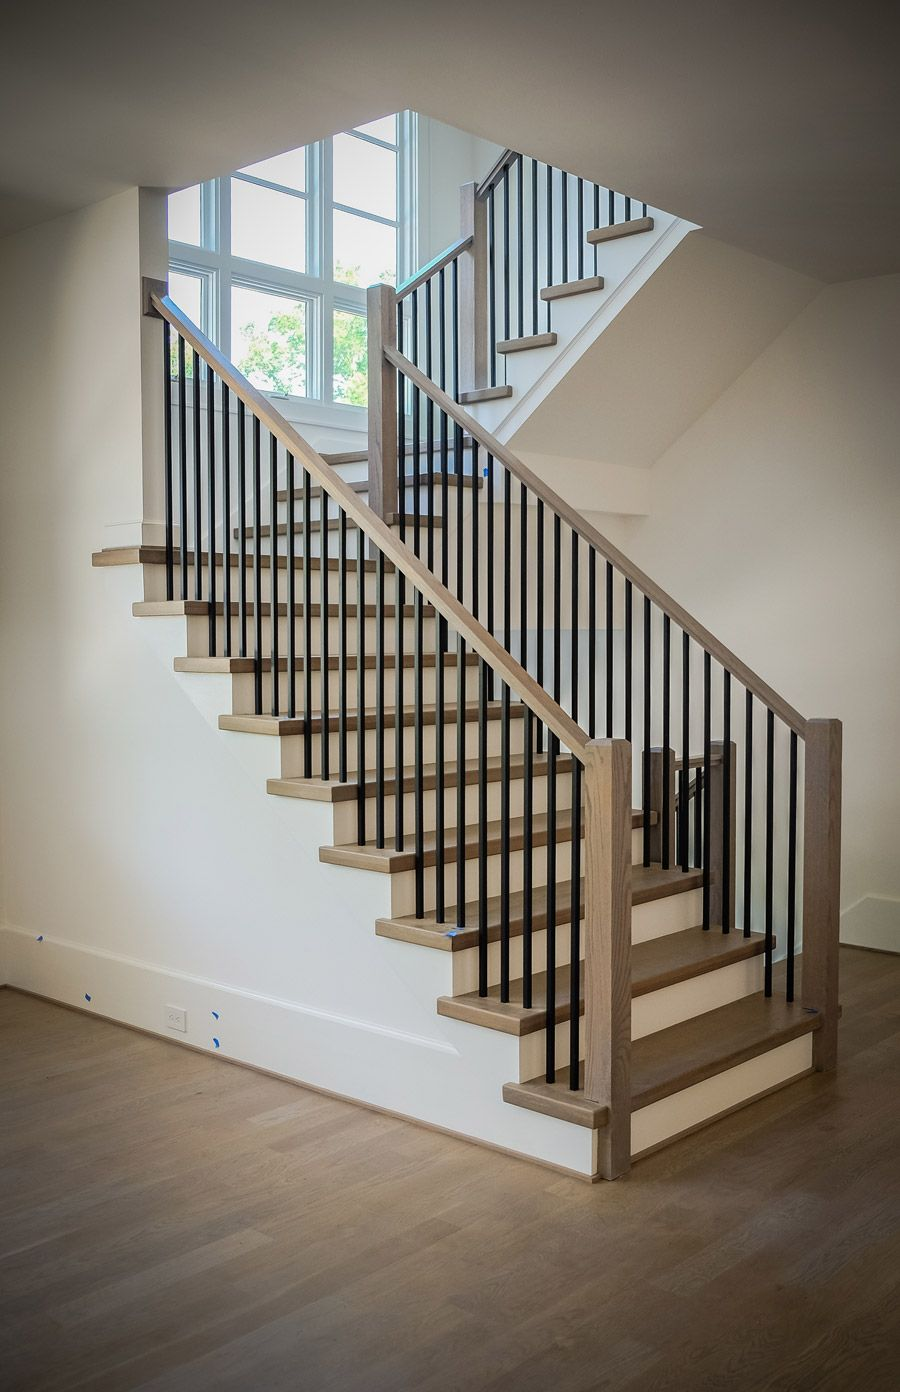 Metal Baluster System In 2020 Stair Railing Design | Iron Railings For Steps